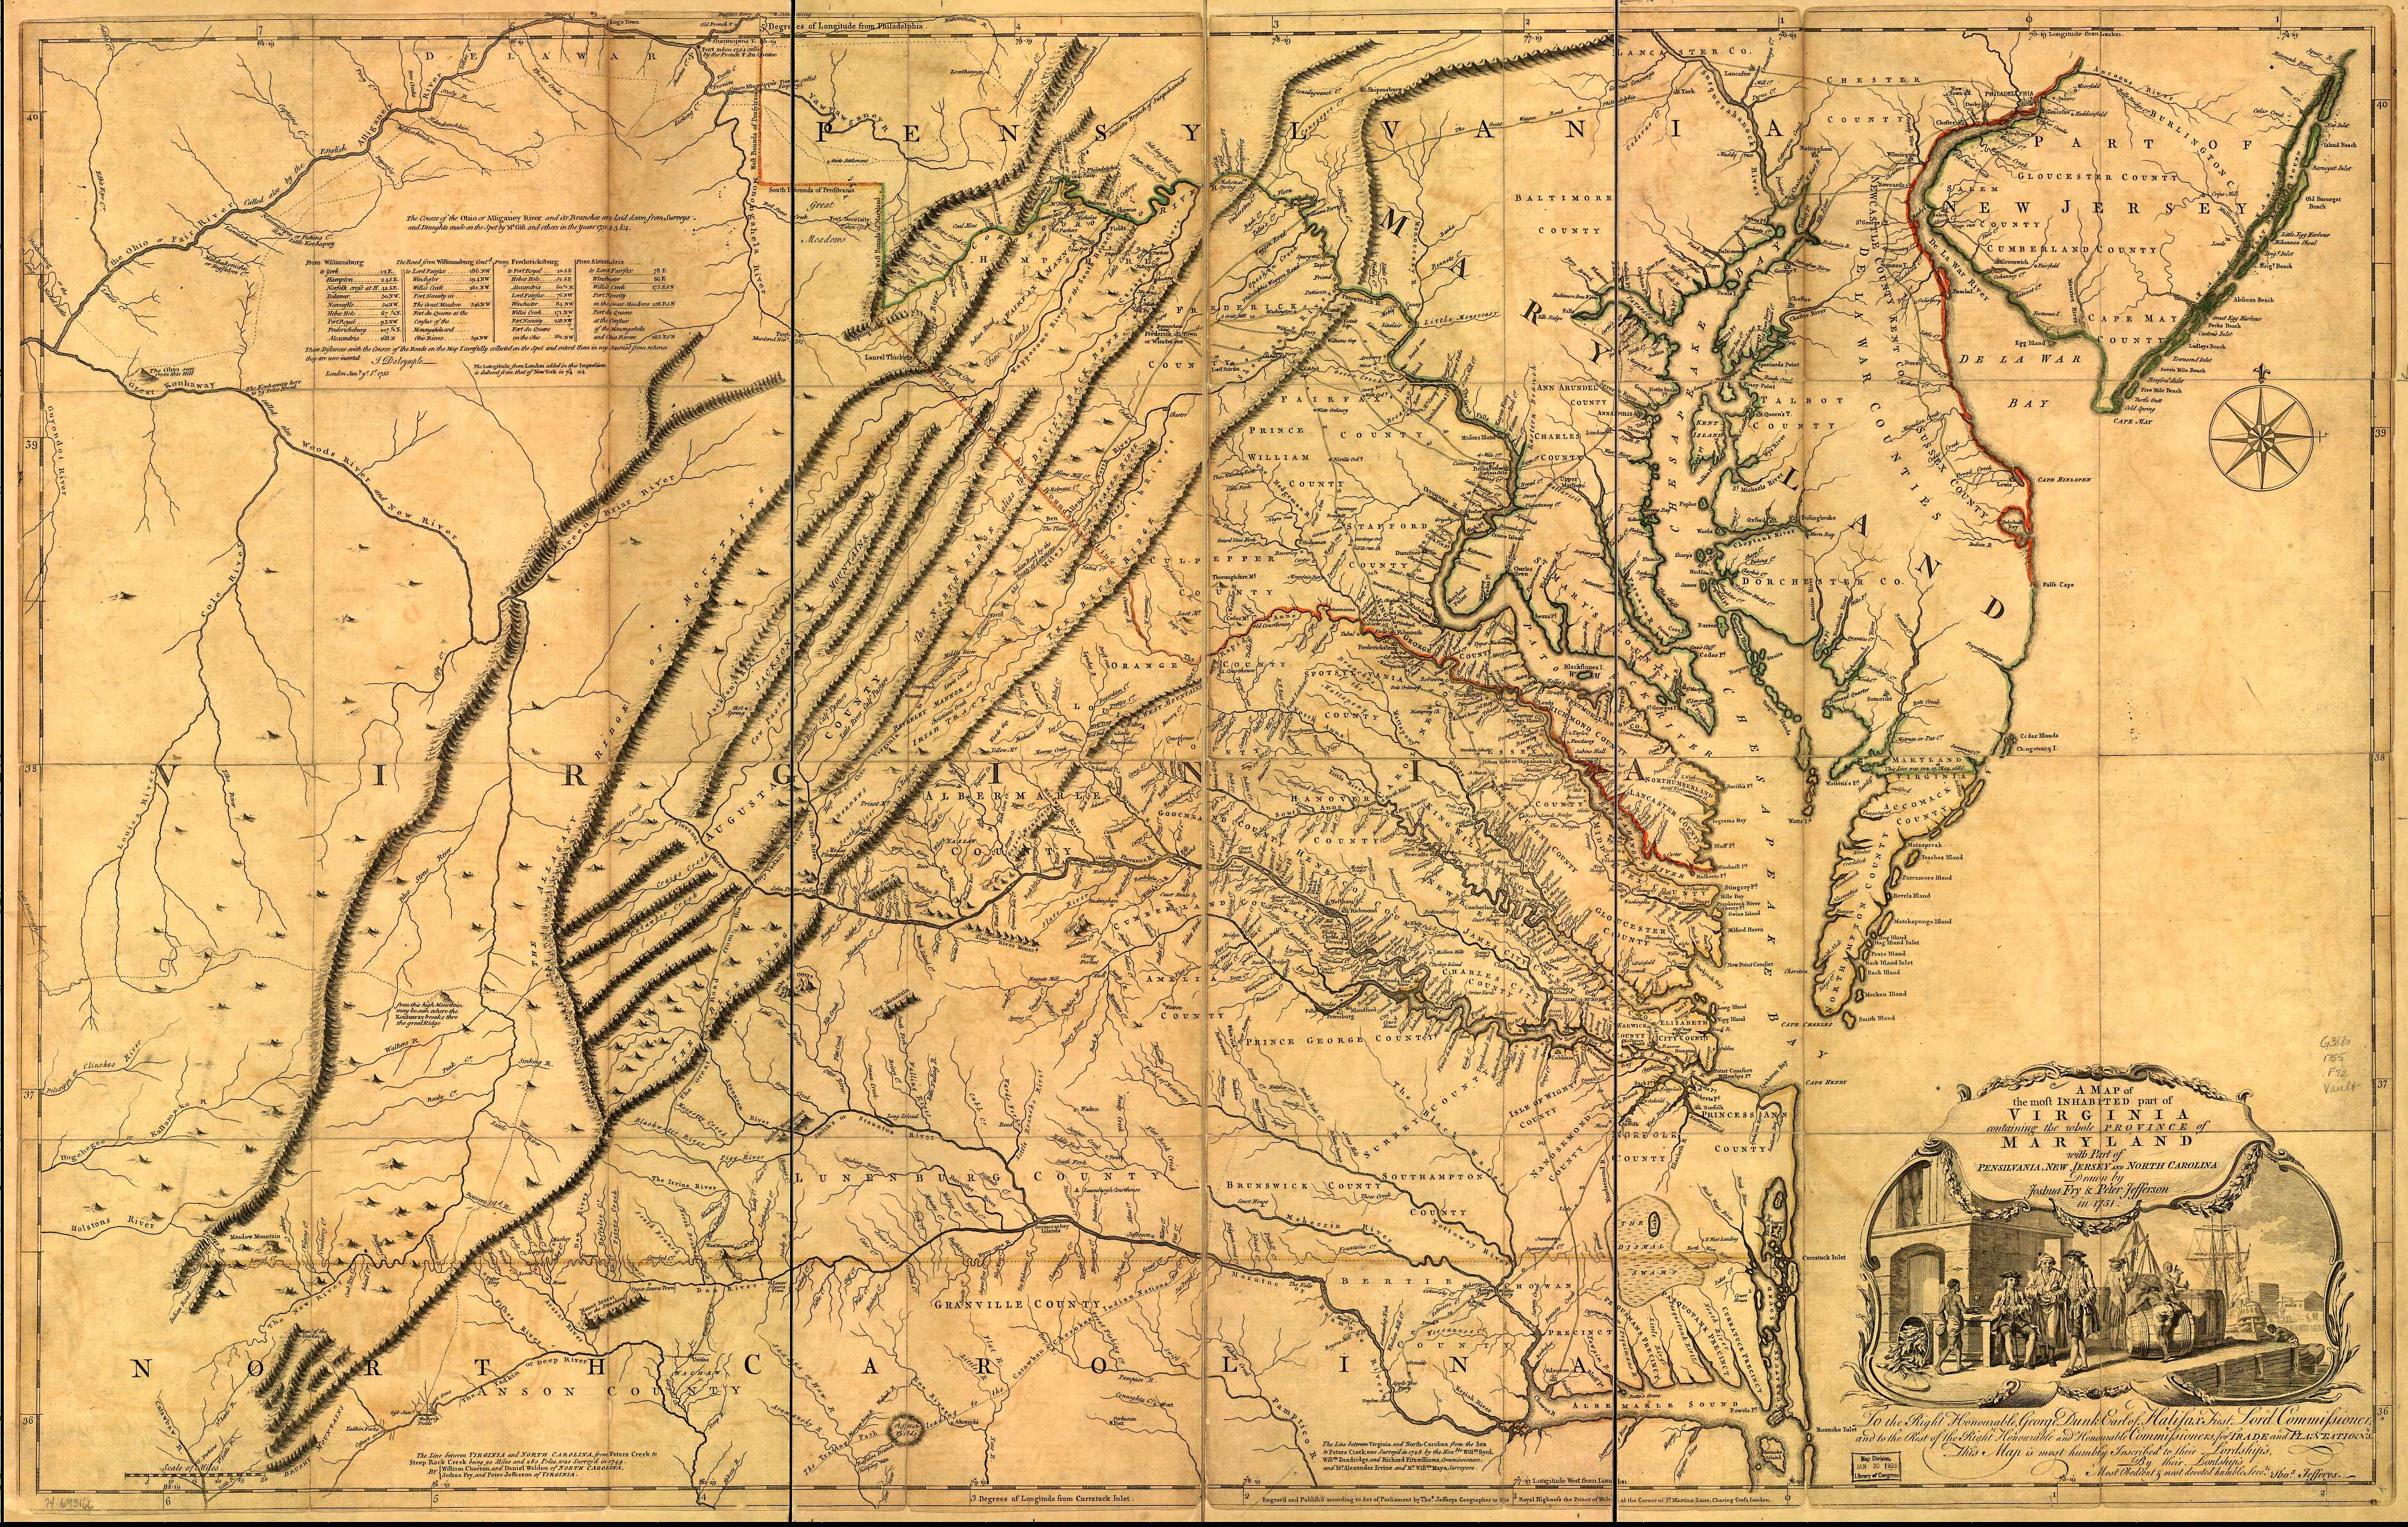 Fry-Jefferson map of Virginia, 1751, A map of the most inhabited part of Virginia containing the whole province of Maryland with part of Pensilvania, New Jersey and North Carolina